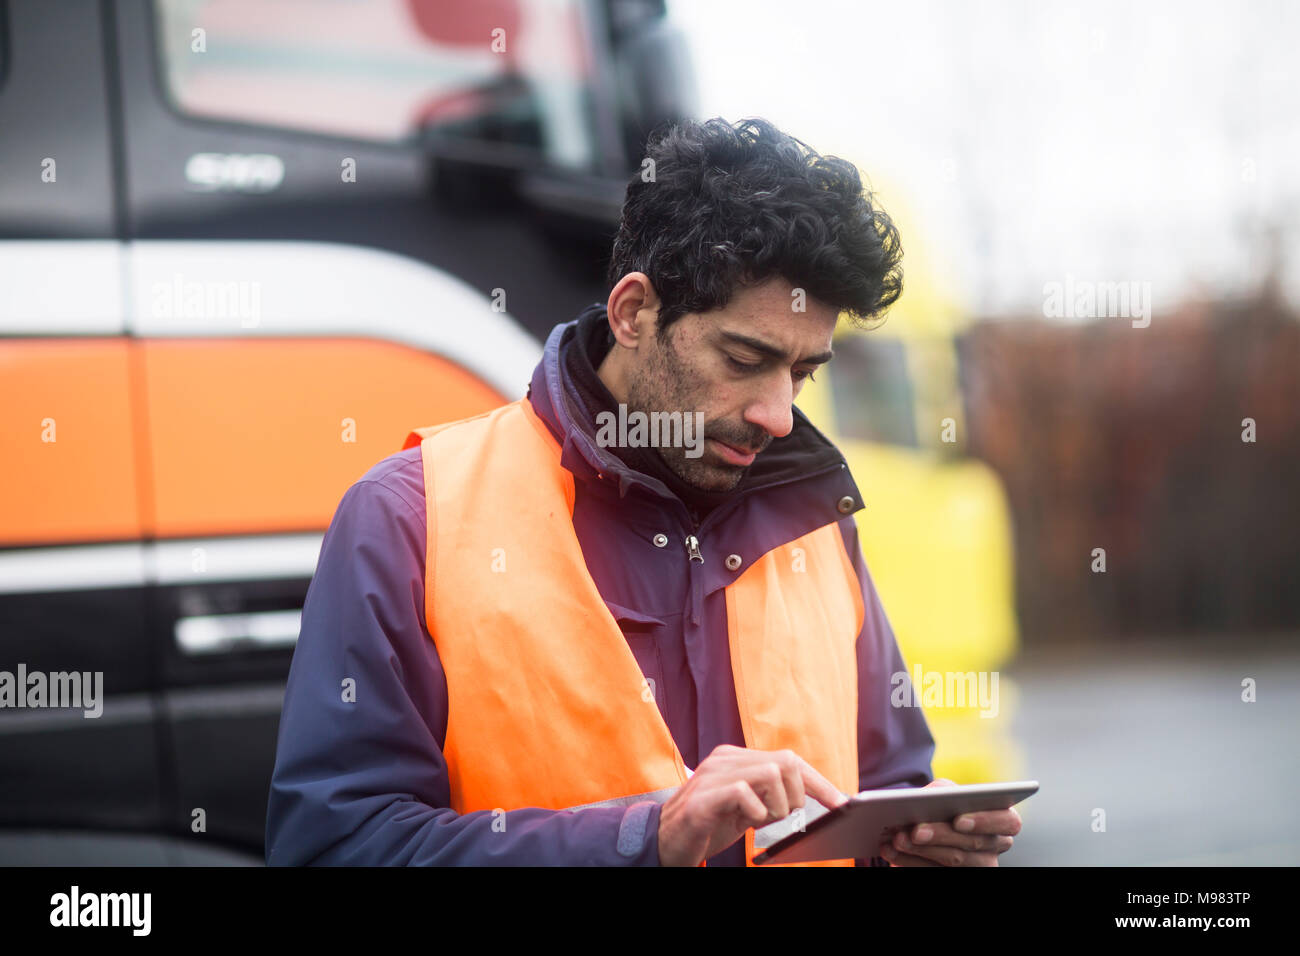 Man wearing reflective vest using tablet at trucks - Stock Image